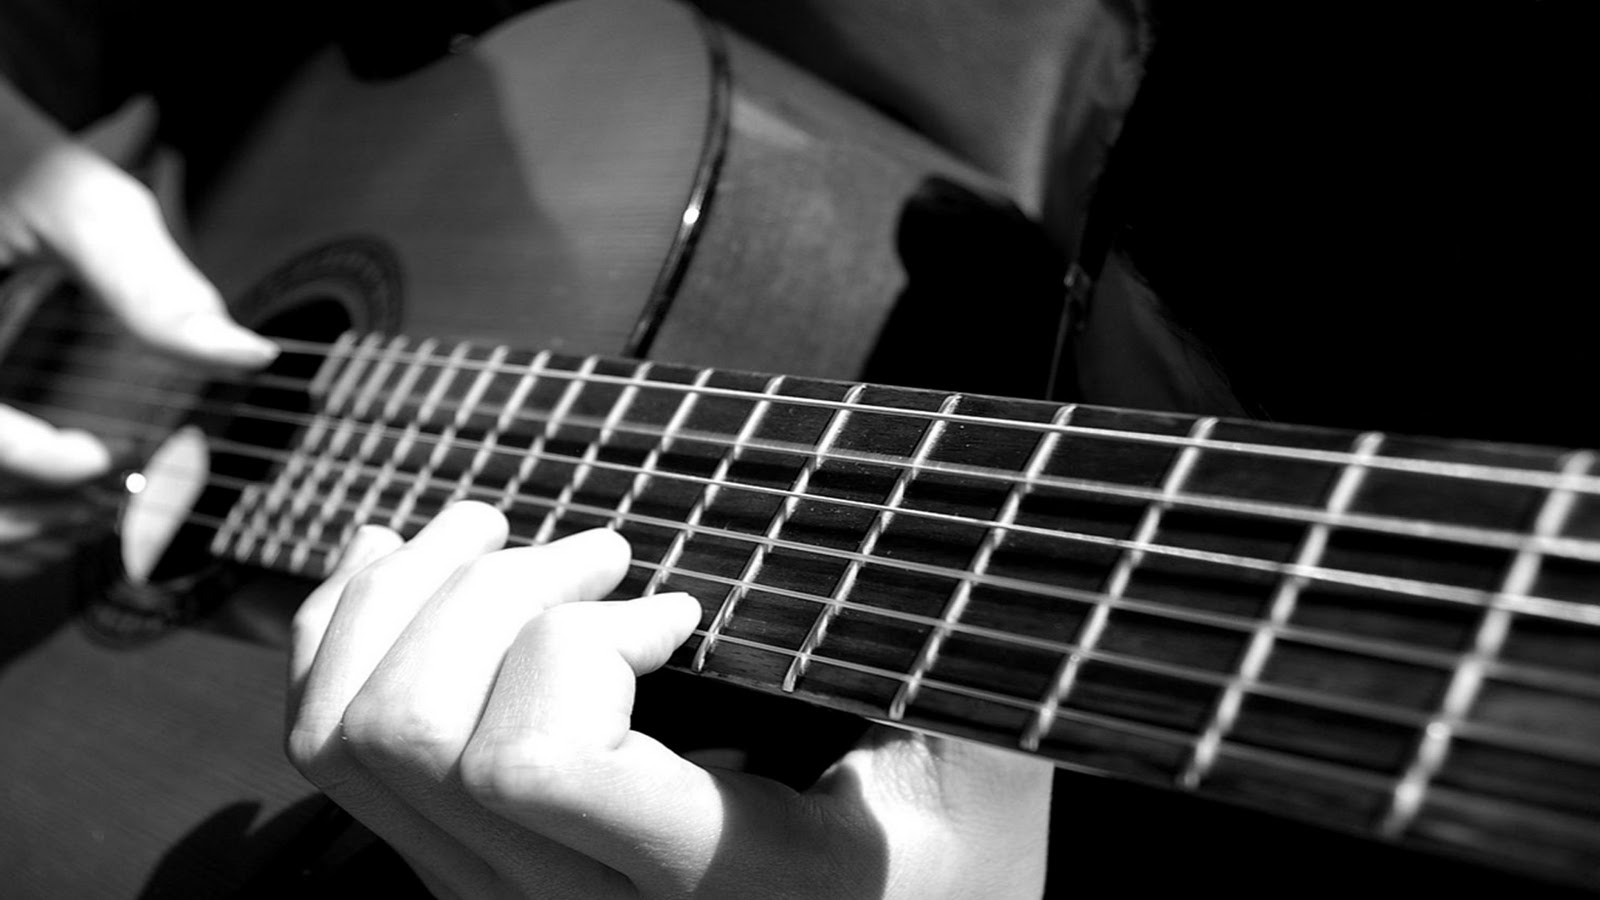 http://3.bp.blogspot.com/-9F2B2j6ekH4/TZKKMzxbcKI/AAAAAAAAAdg/R8lrZlEAJKU/s1600/Classical+Guitar+Playing+Acoustic+Hands+Fretboard+Fingers+Fingerpicking+Black+and+White+Music+Desktop+HD+Wallpaper+1920x1080+Great+Guitar+Sound+www.GreatGuitarSound.Blogspot.c